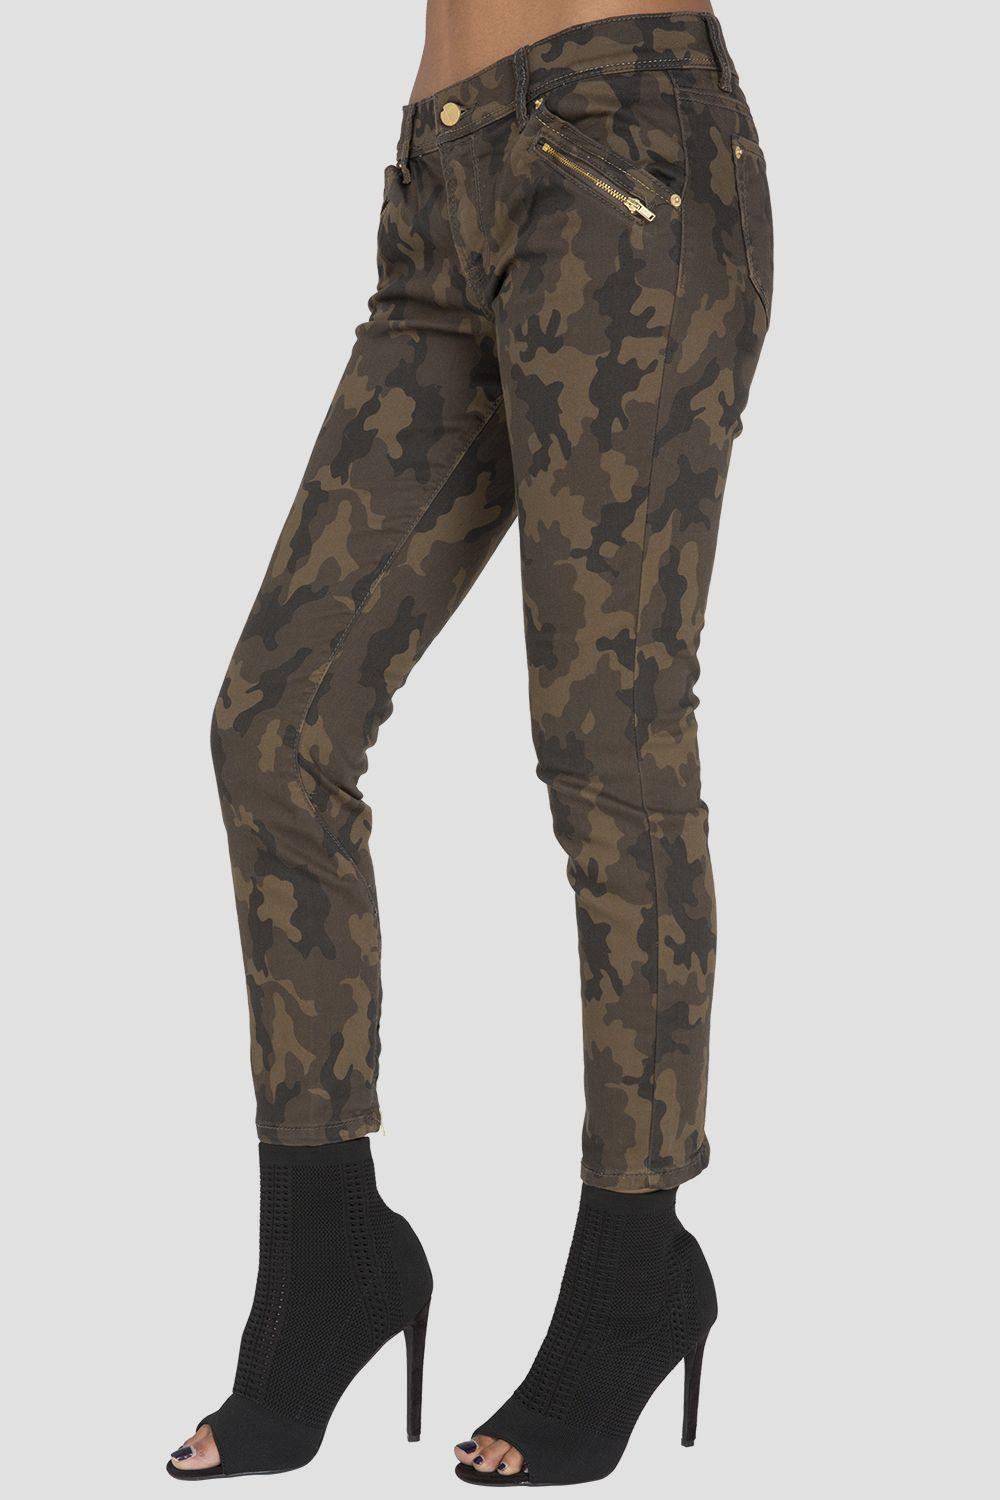 Saint Camo Pieced Ankle Zippers Cropped Skinny Jeans